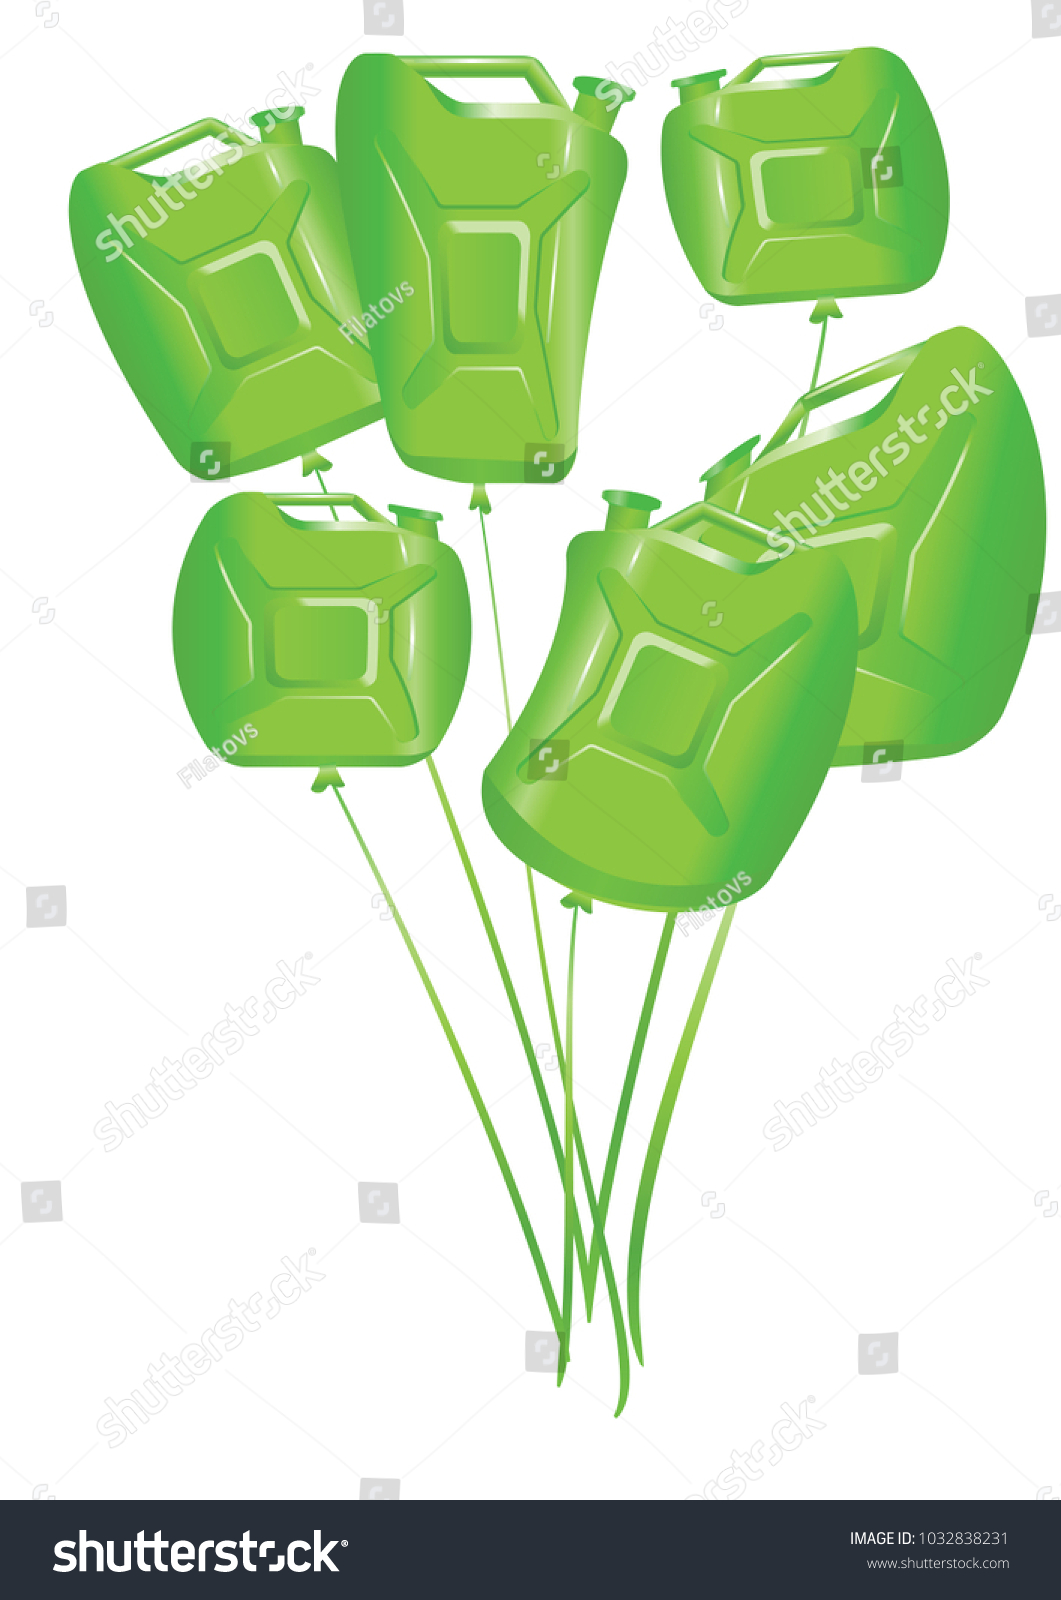 Balloons Greeting Cards Gas Station Employees Stock Vector